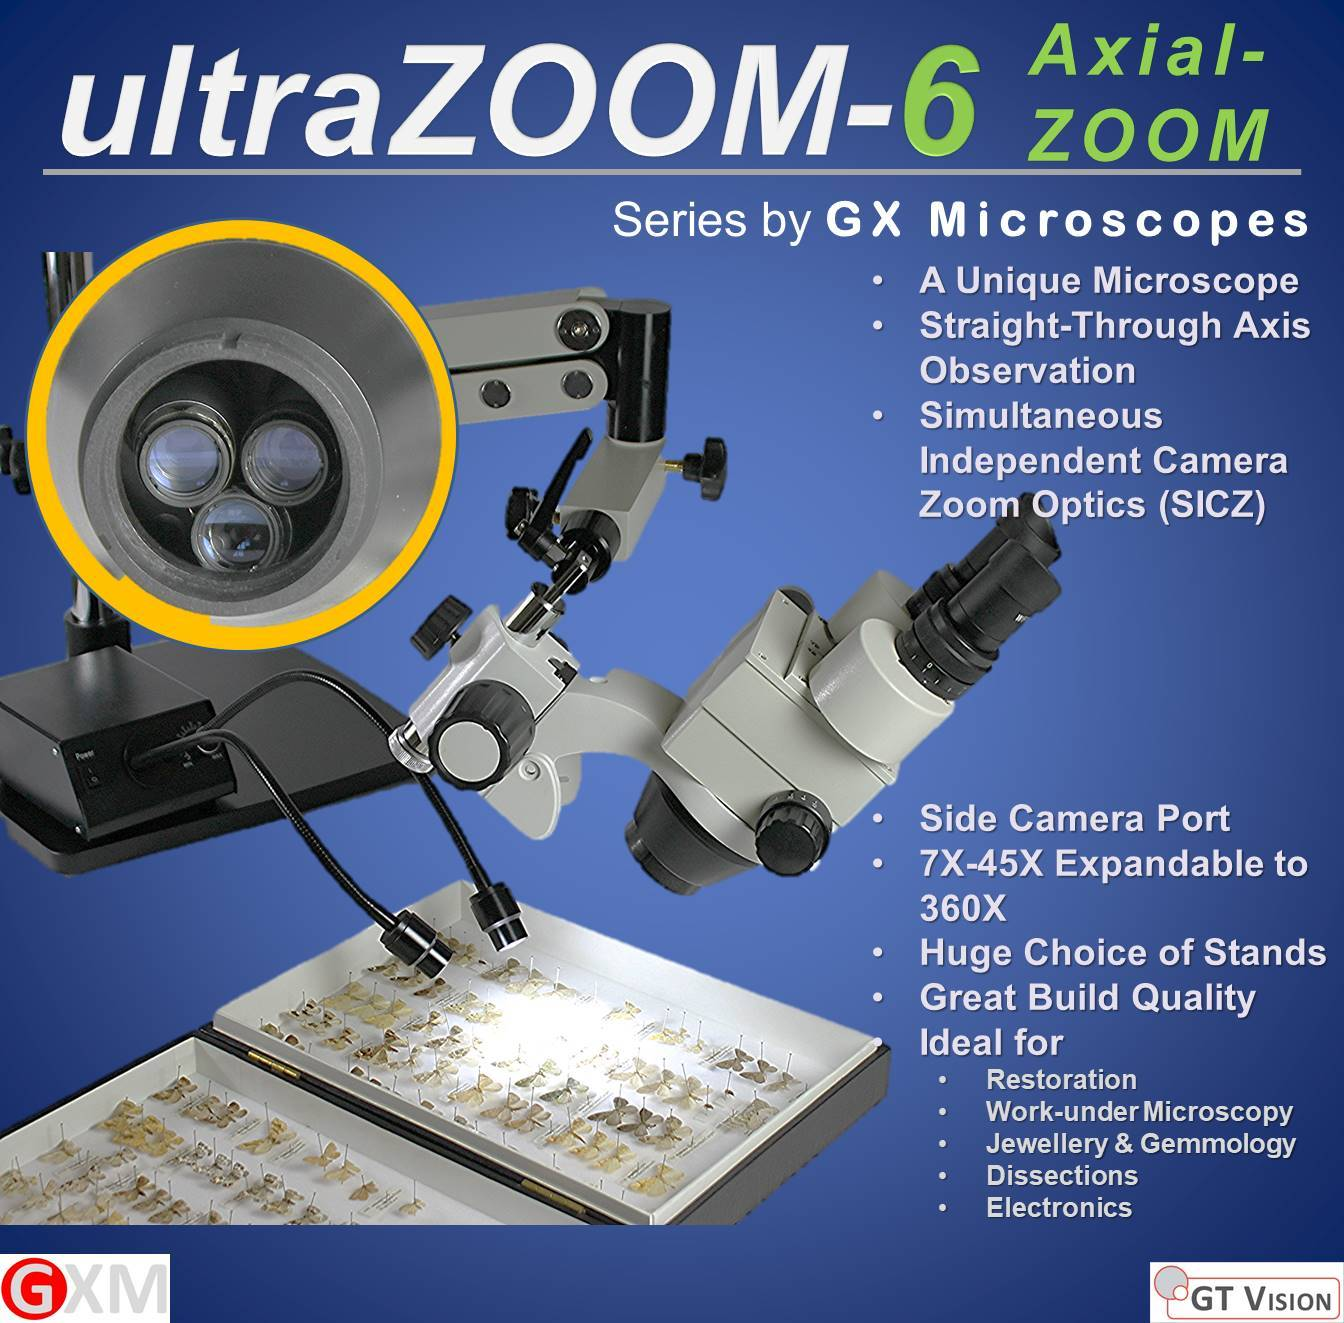 UltraZoom-6 Axial Zoom Stereo Zoom Microscope GX Microscopes by GT Vision Ltd